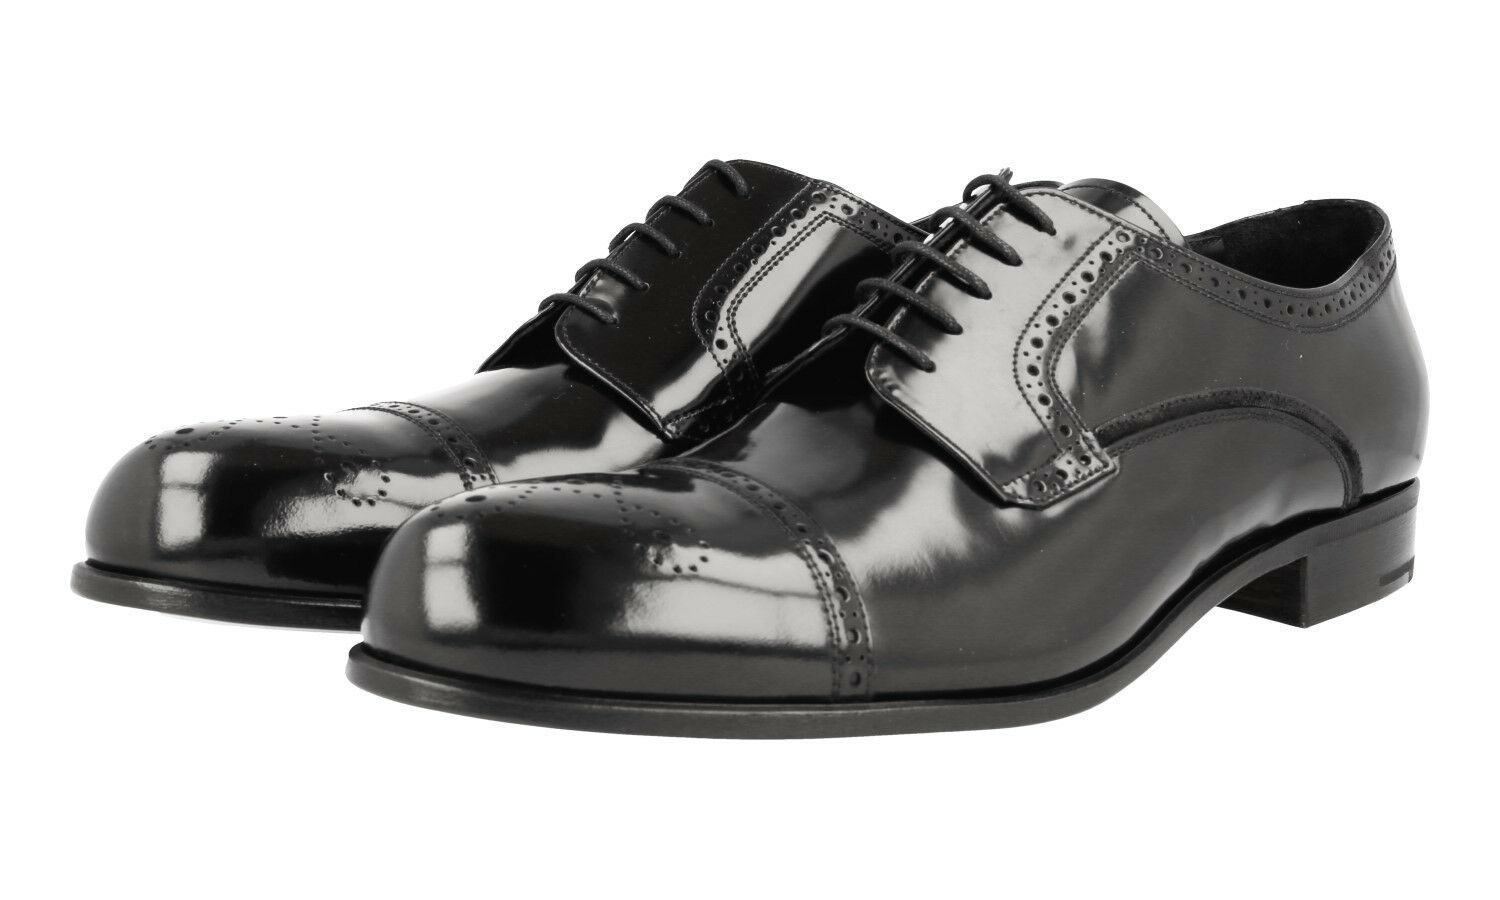 LUXUS PRADA CAP TOE DERBY SEMI BROGUE SCHUHE 2EE205 SCHWARZ NEU NEW 9,5 43,5 44